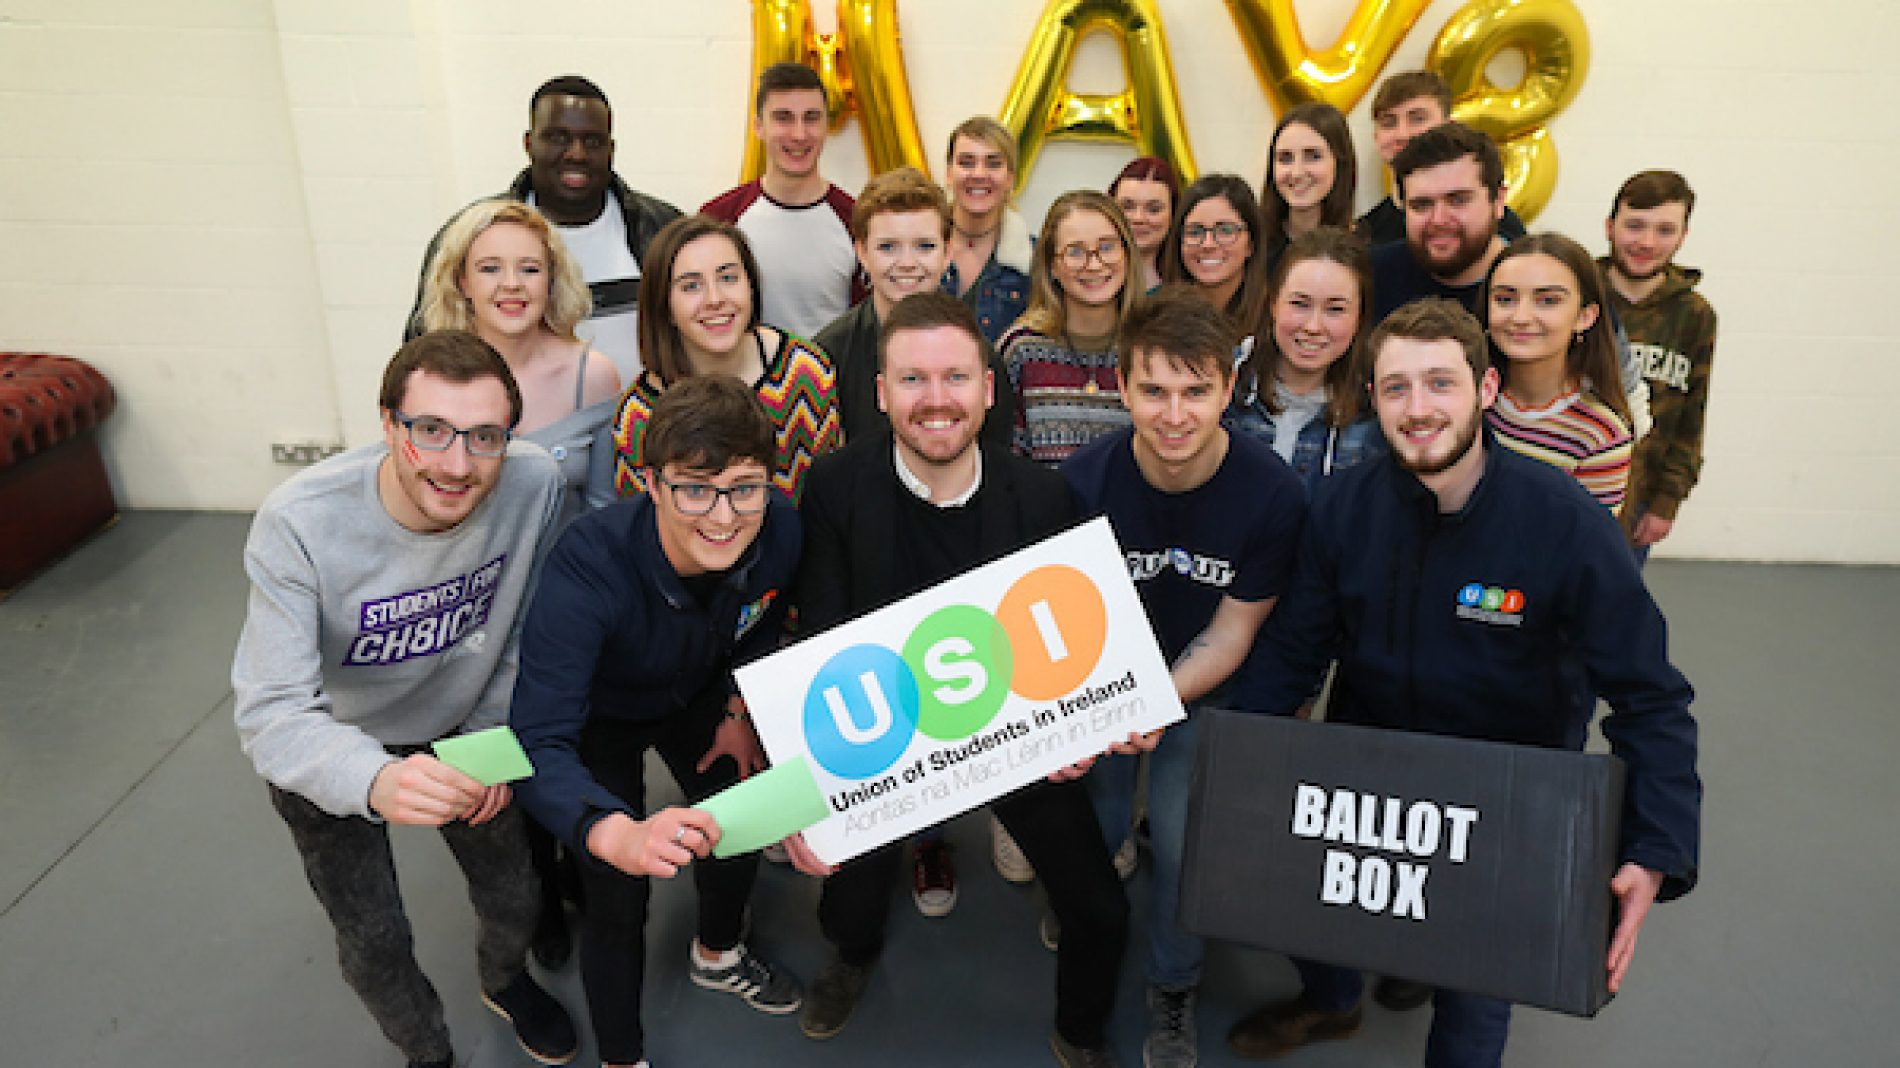 Young people with spunout and usi